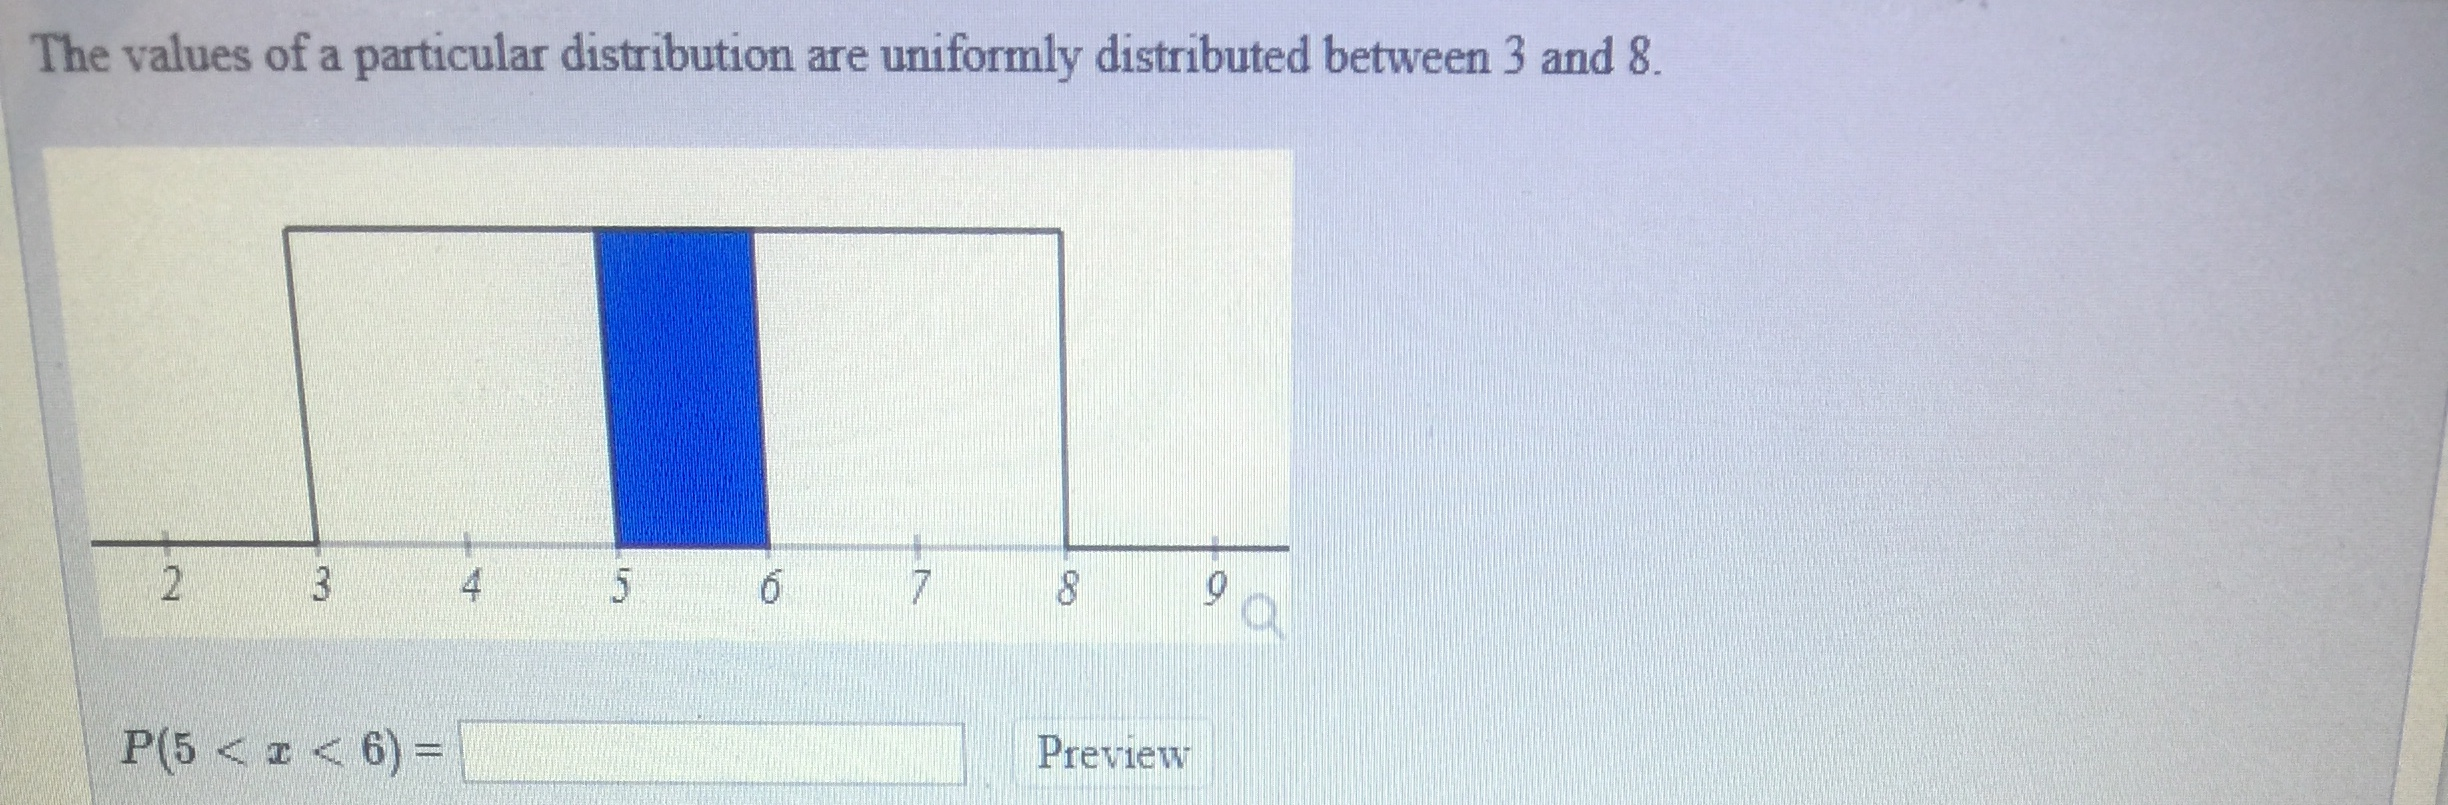 The values of a particular distribution are uniformly distributed between 3 and 8 P6 <z< 6)- Preview